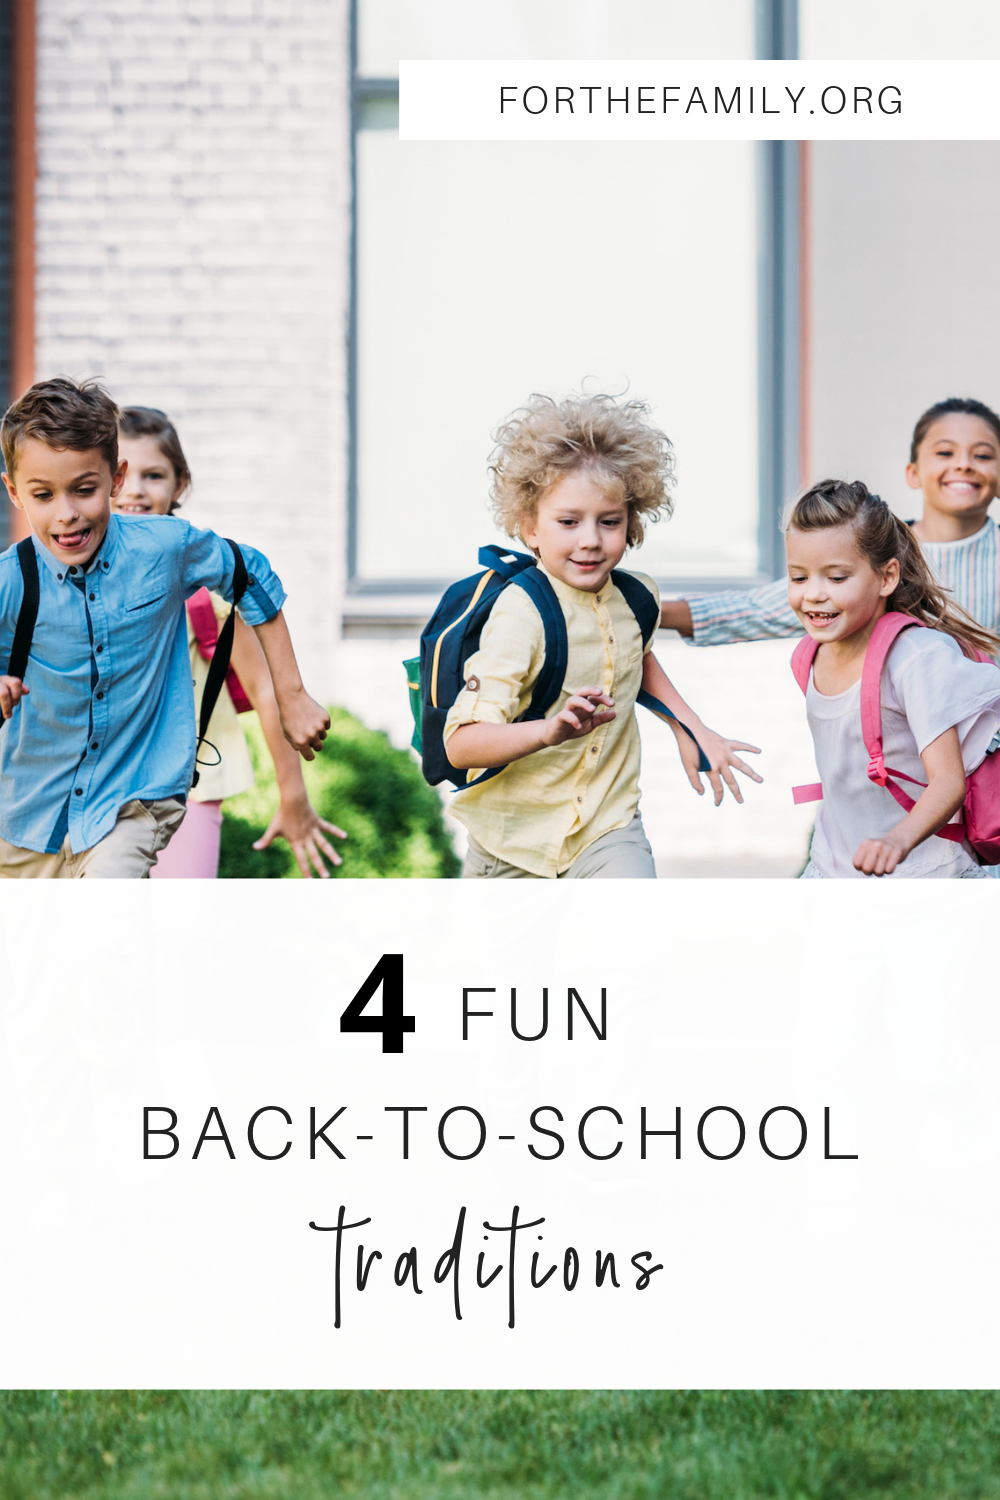 Back to school preparation can be so full of errands and to- do lists! This year, flip the script and make it a season of high connection and fun traditions as your kids get ready for the school year!